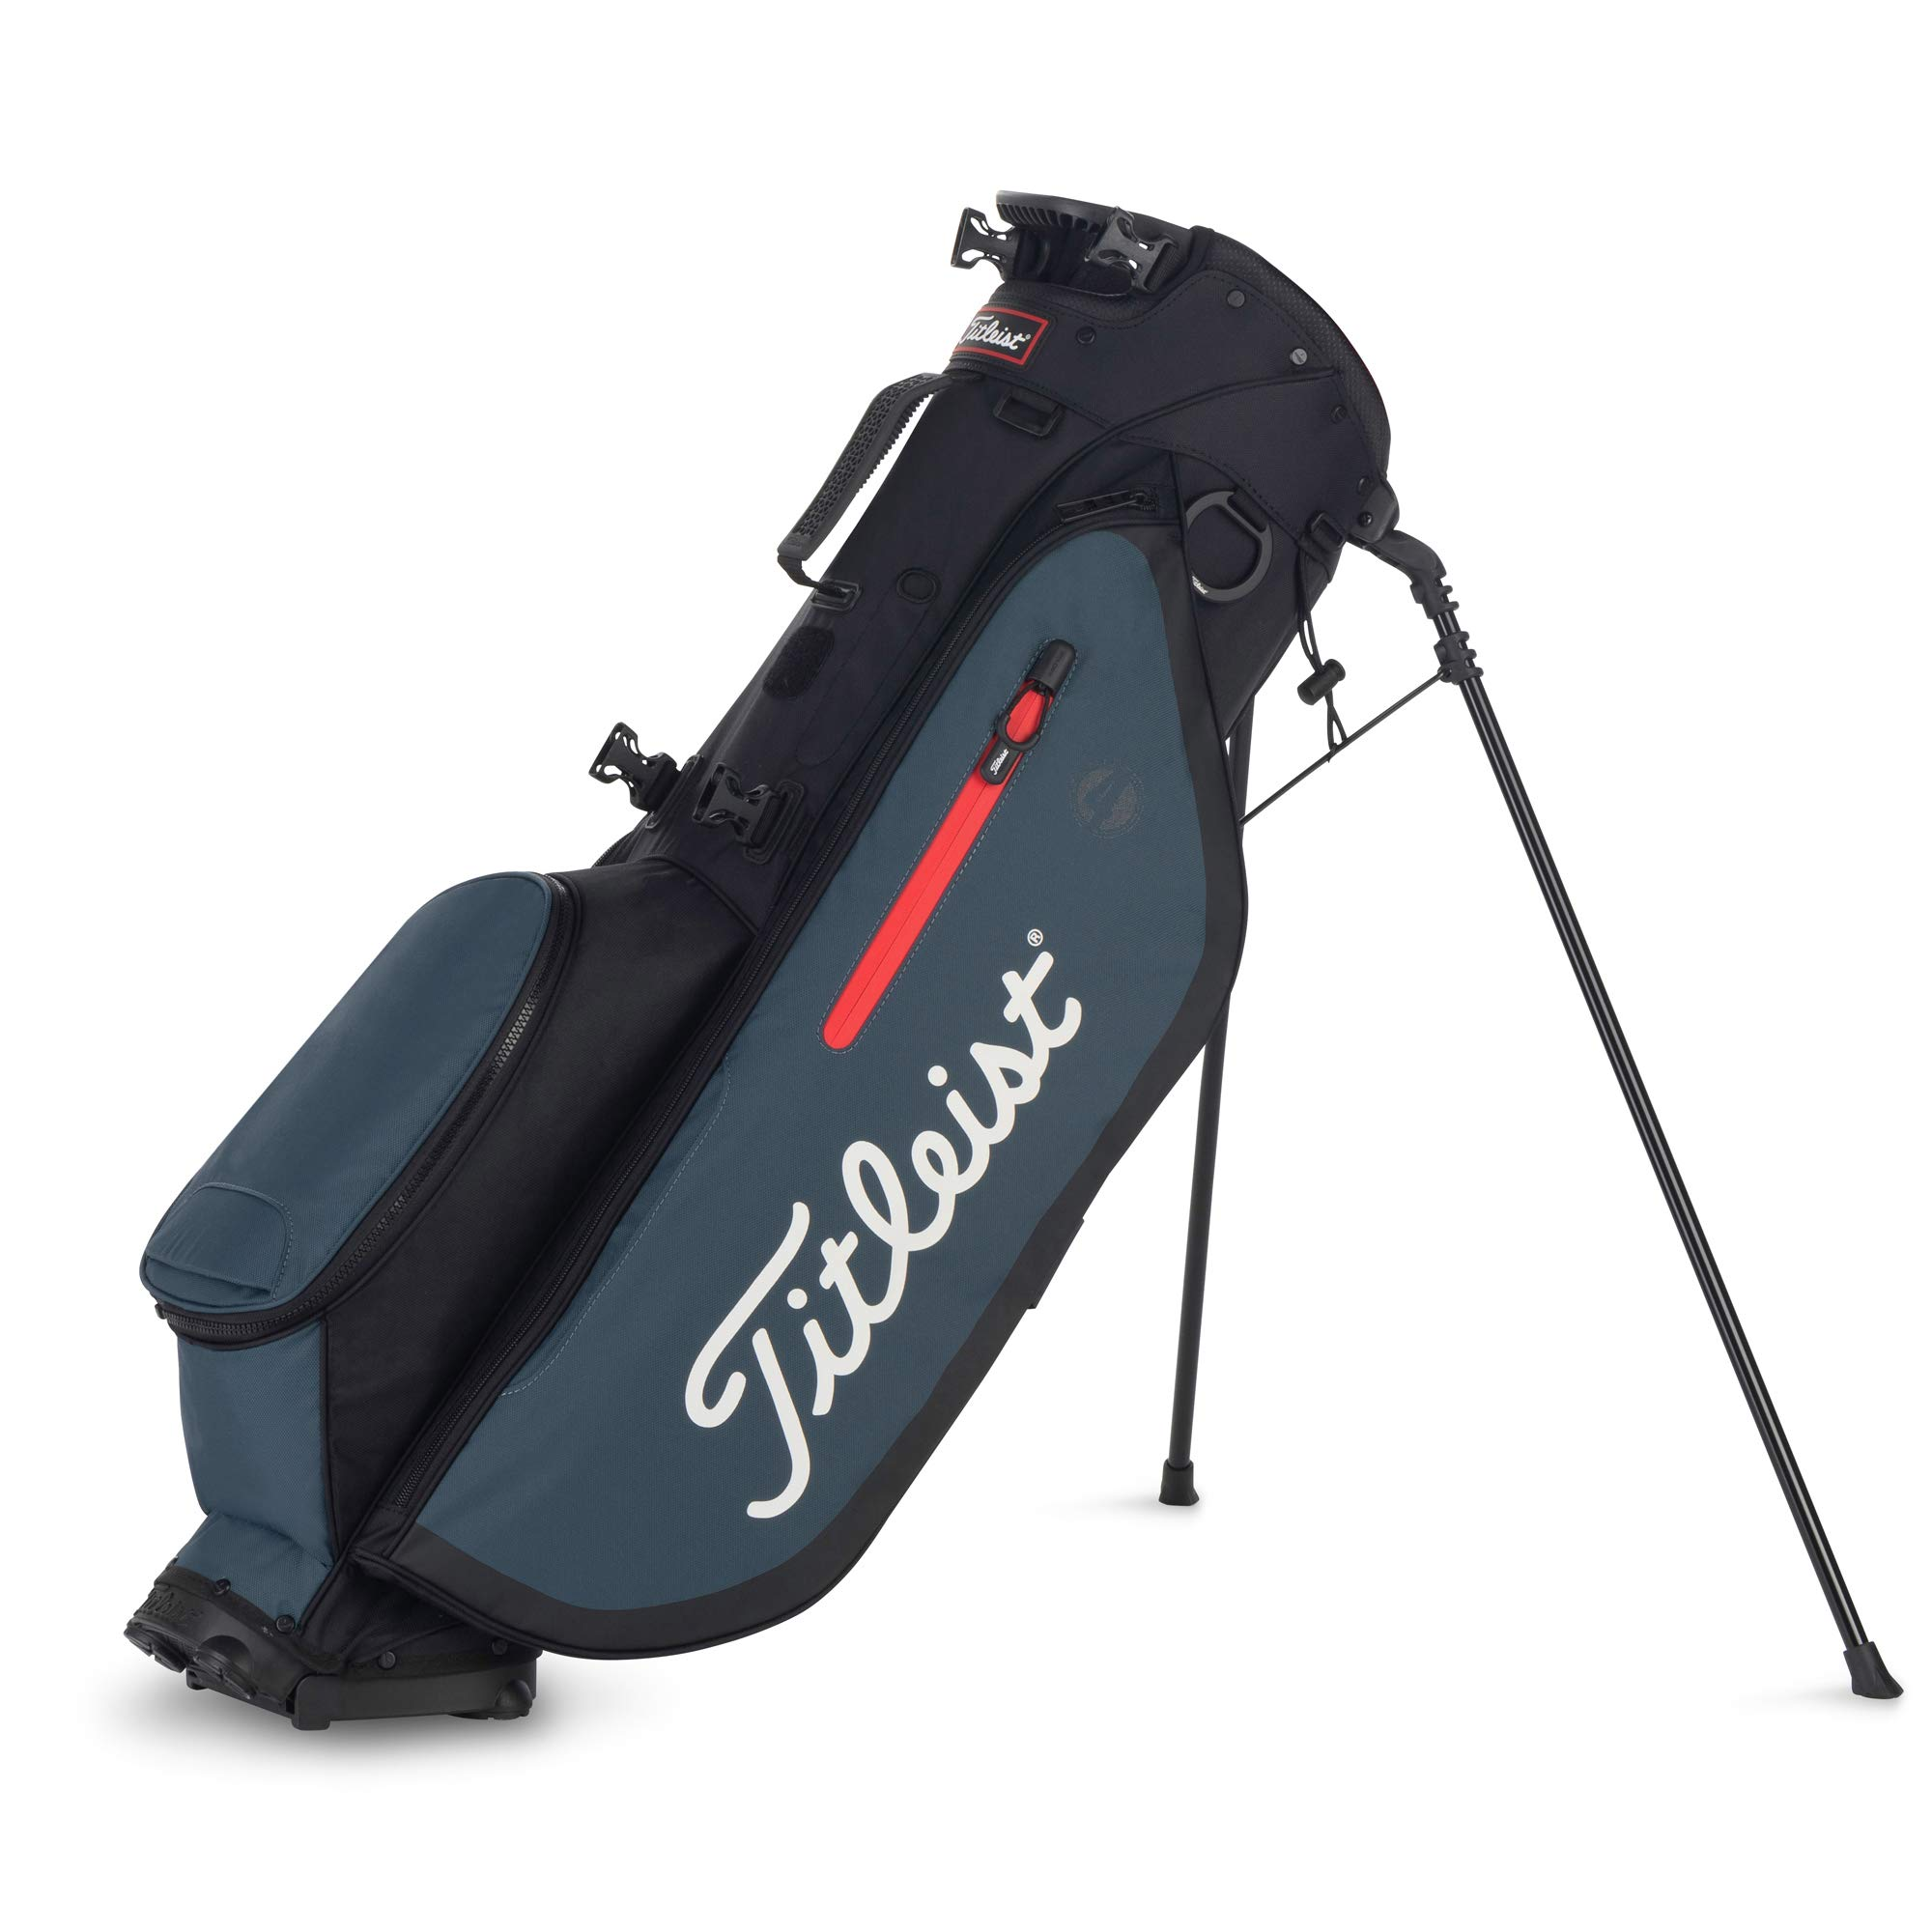 Titleist Players 4 Golf Bag Black / Charcoal by Titleist